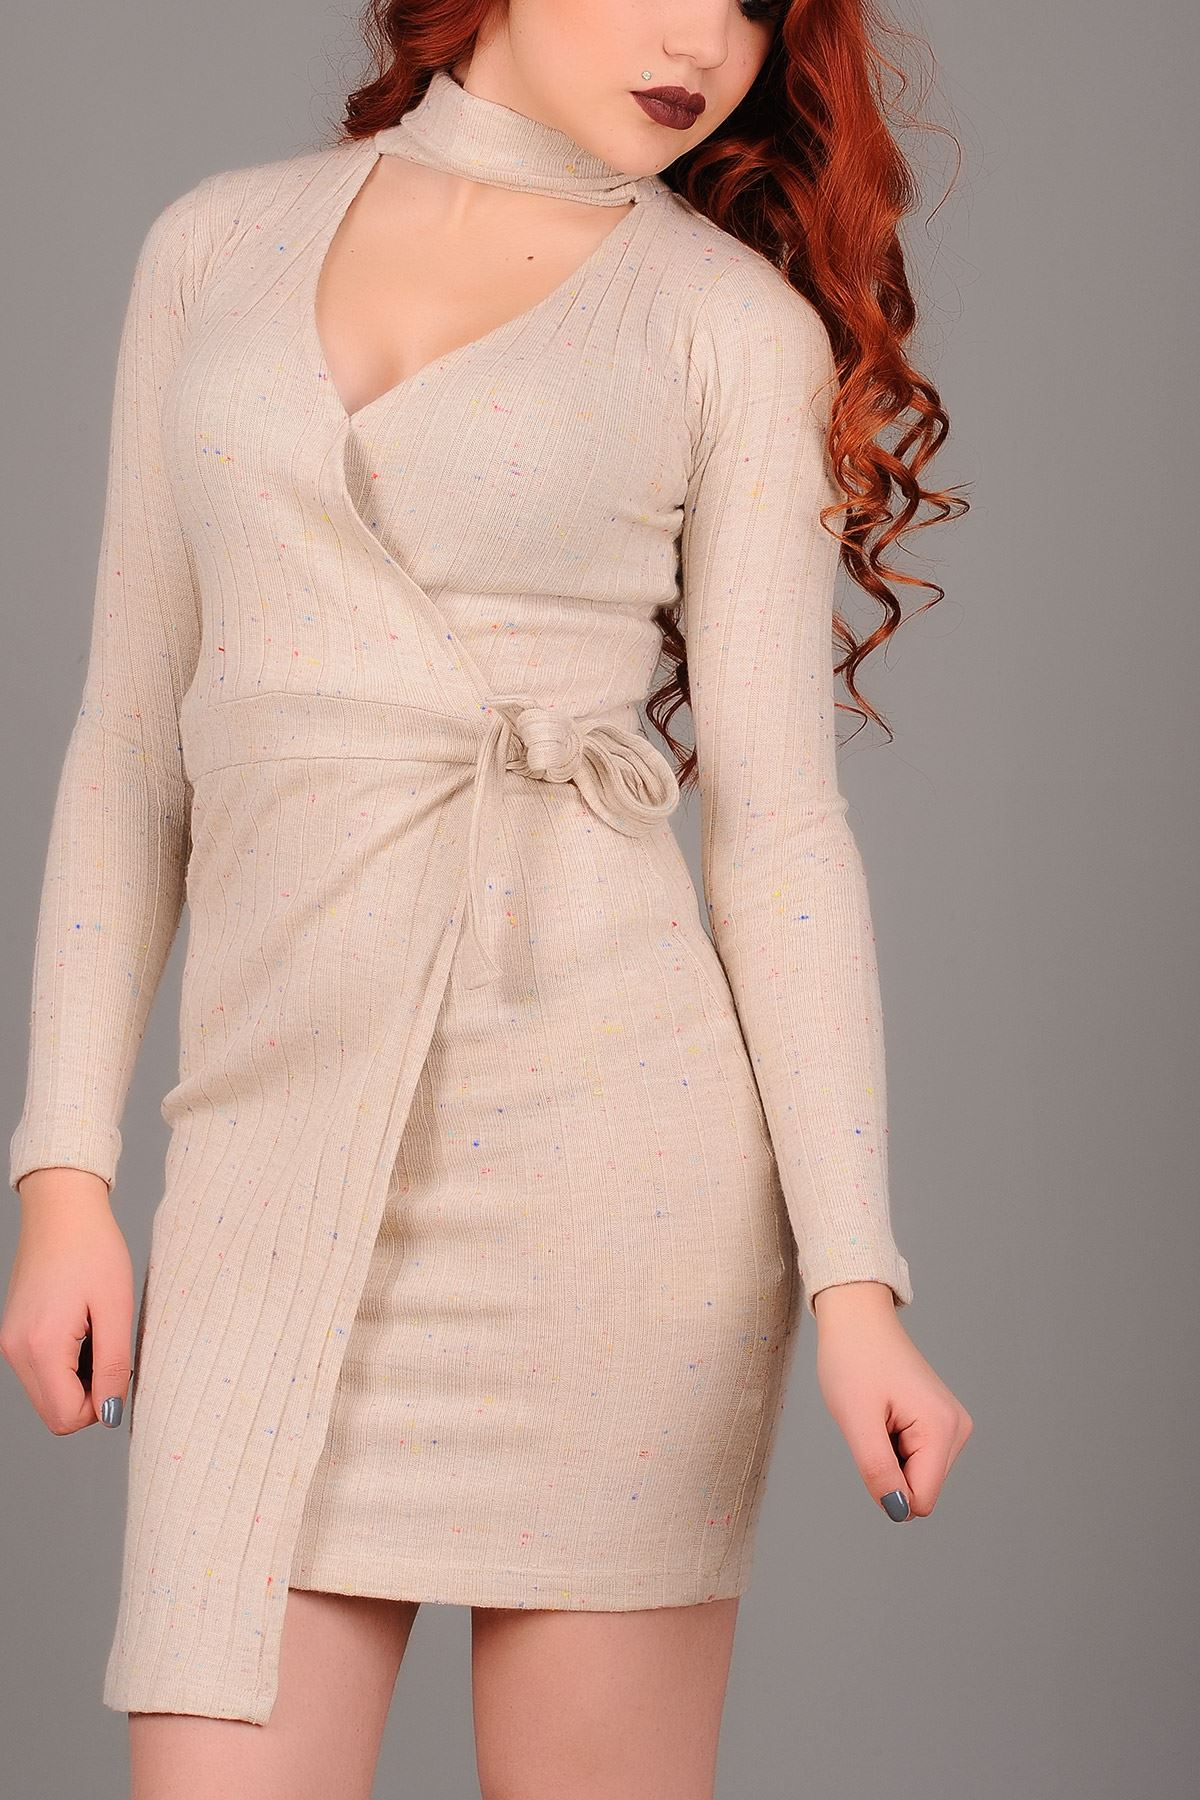 Vavin WRAP DRESS – Beige